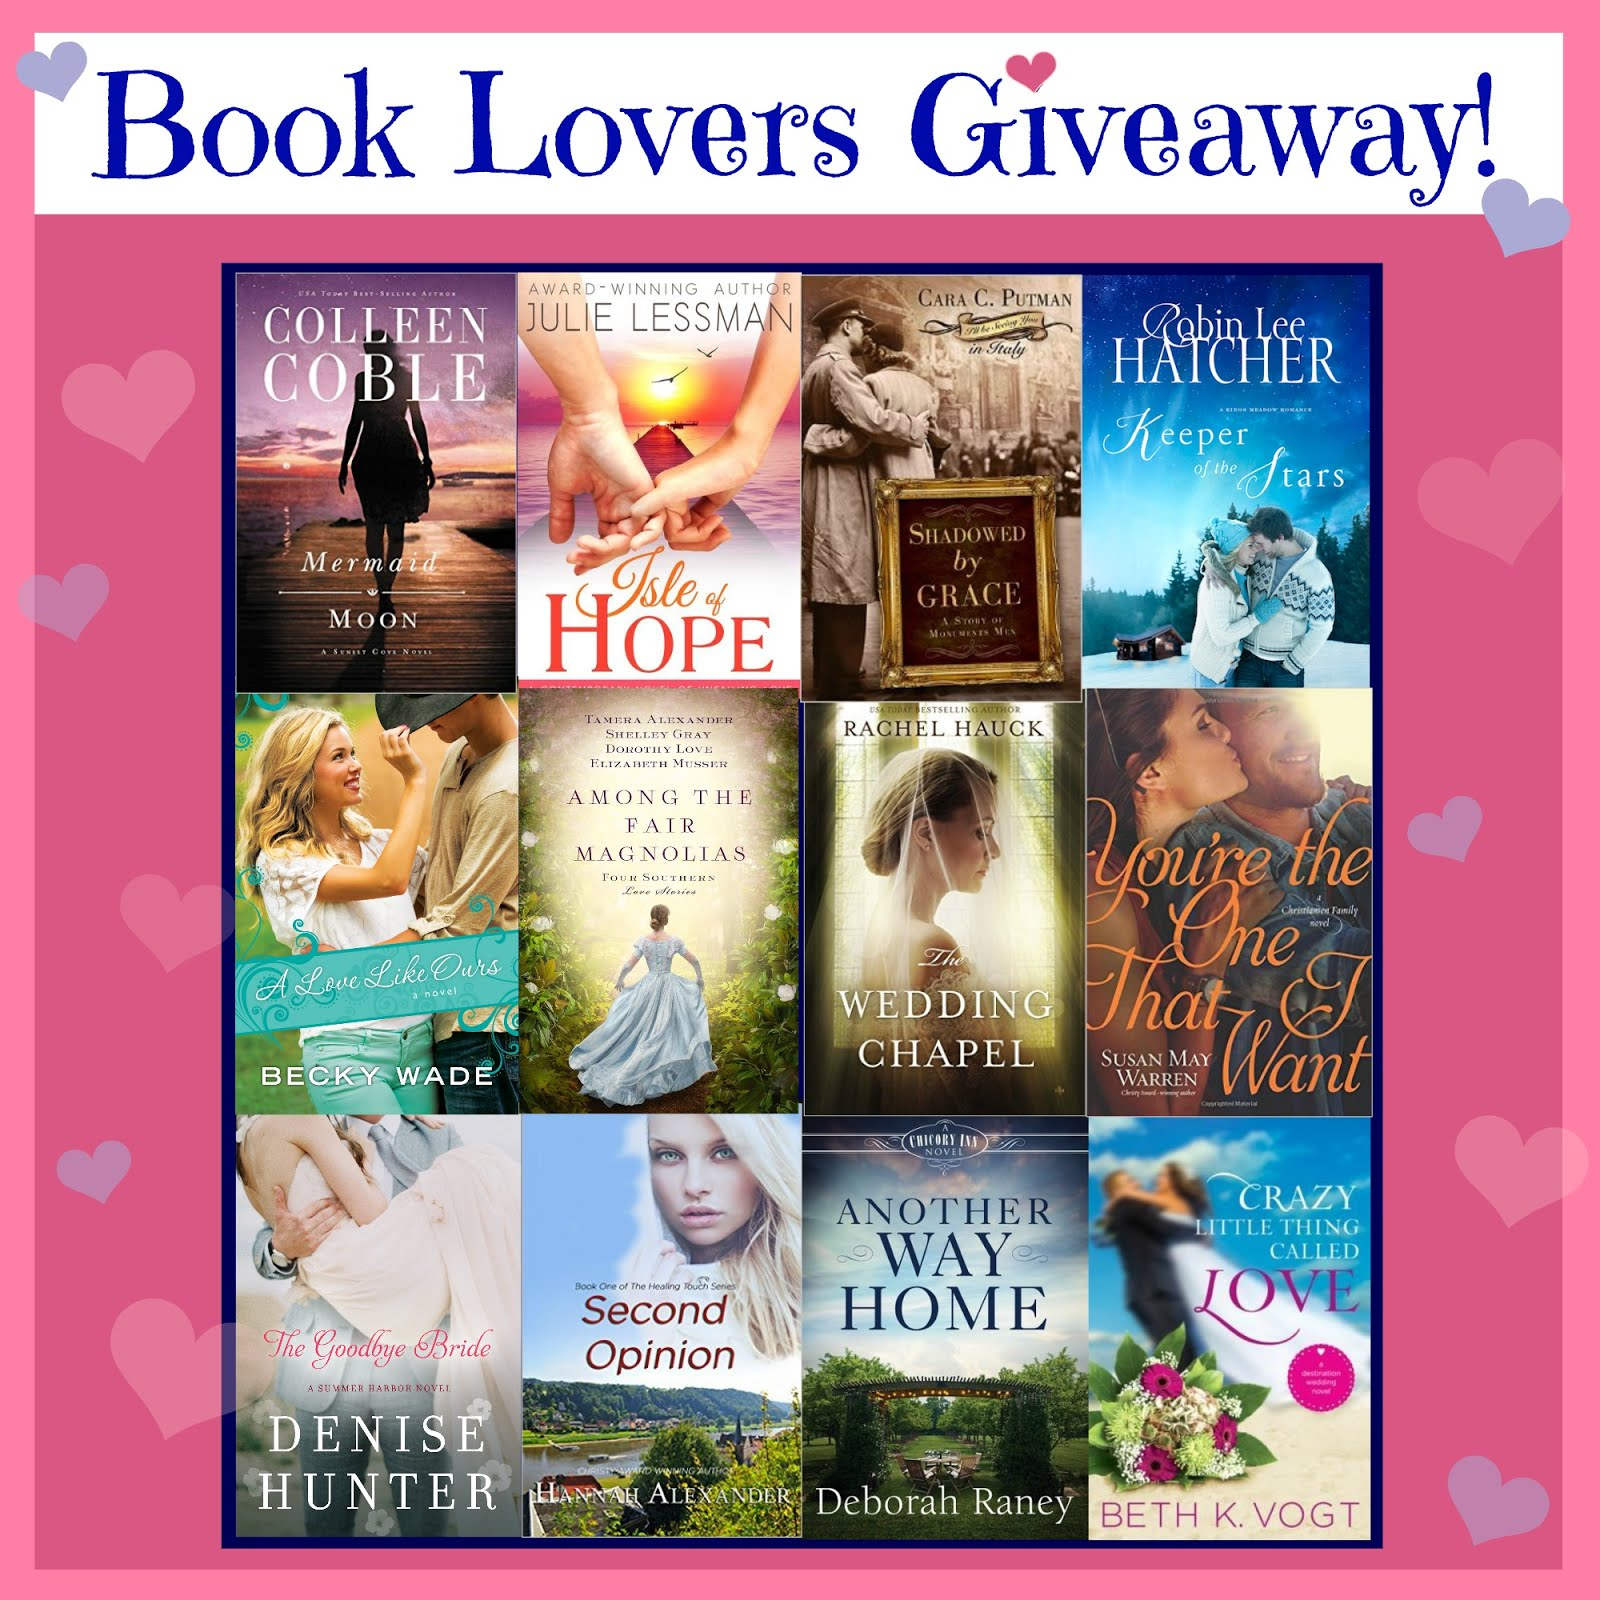 12 Authors' Book Lovers Giveaway thru 2/14